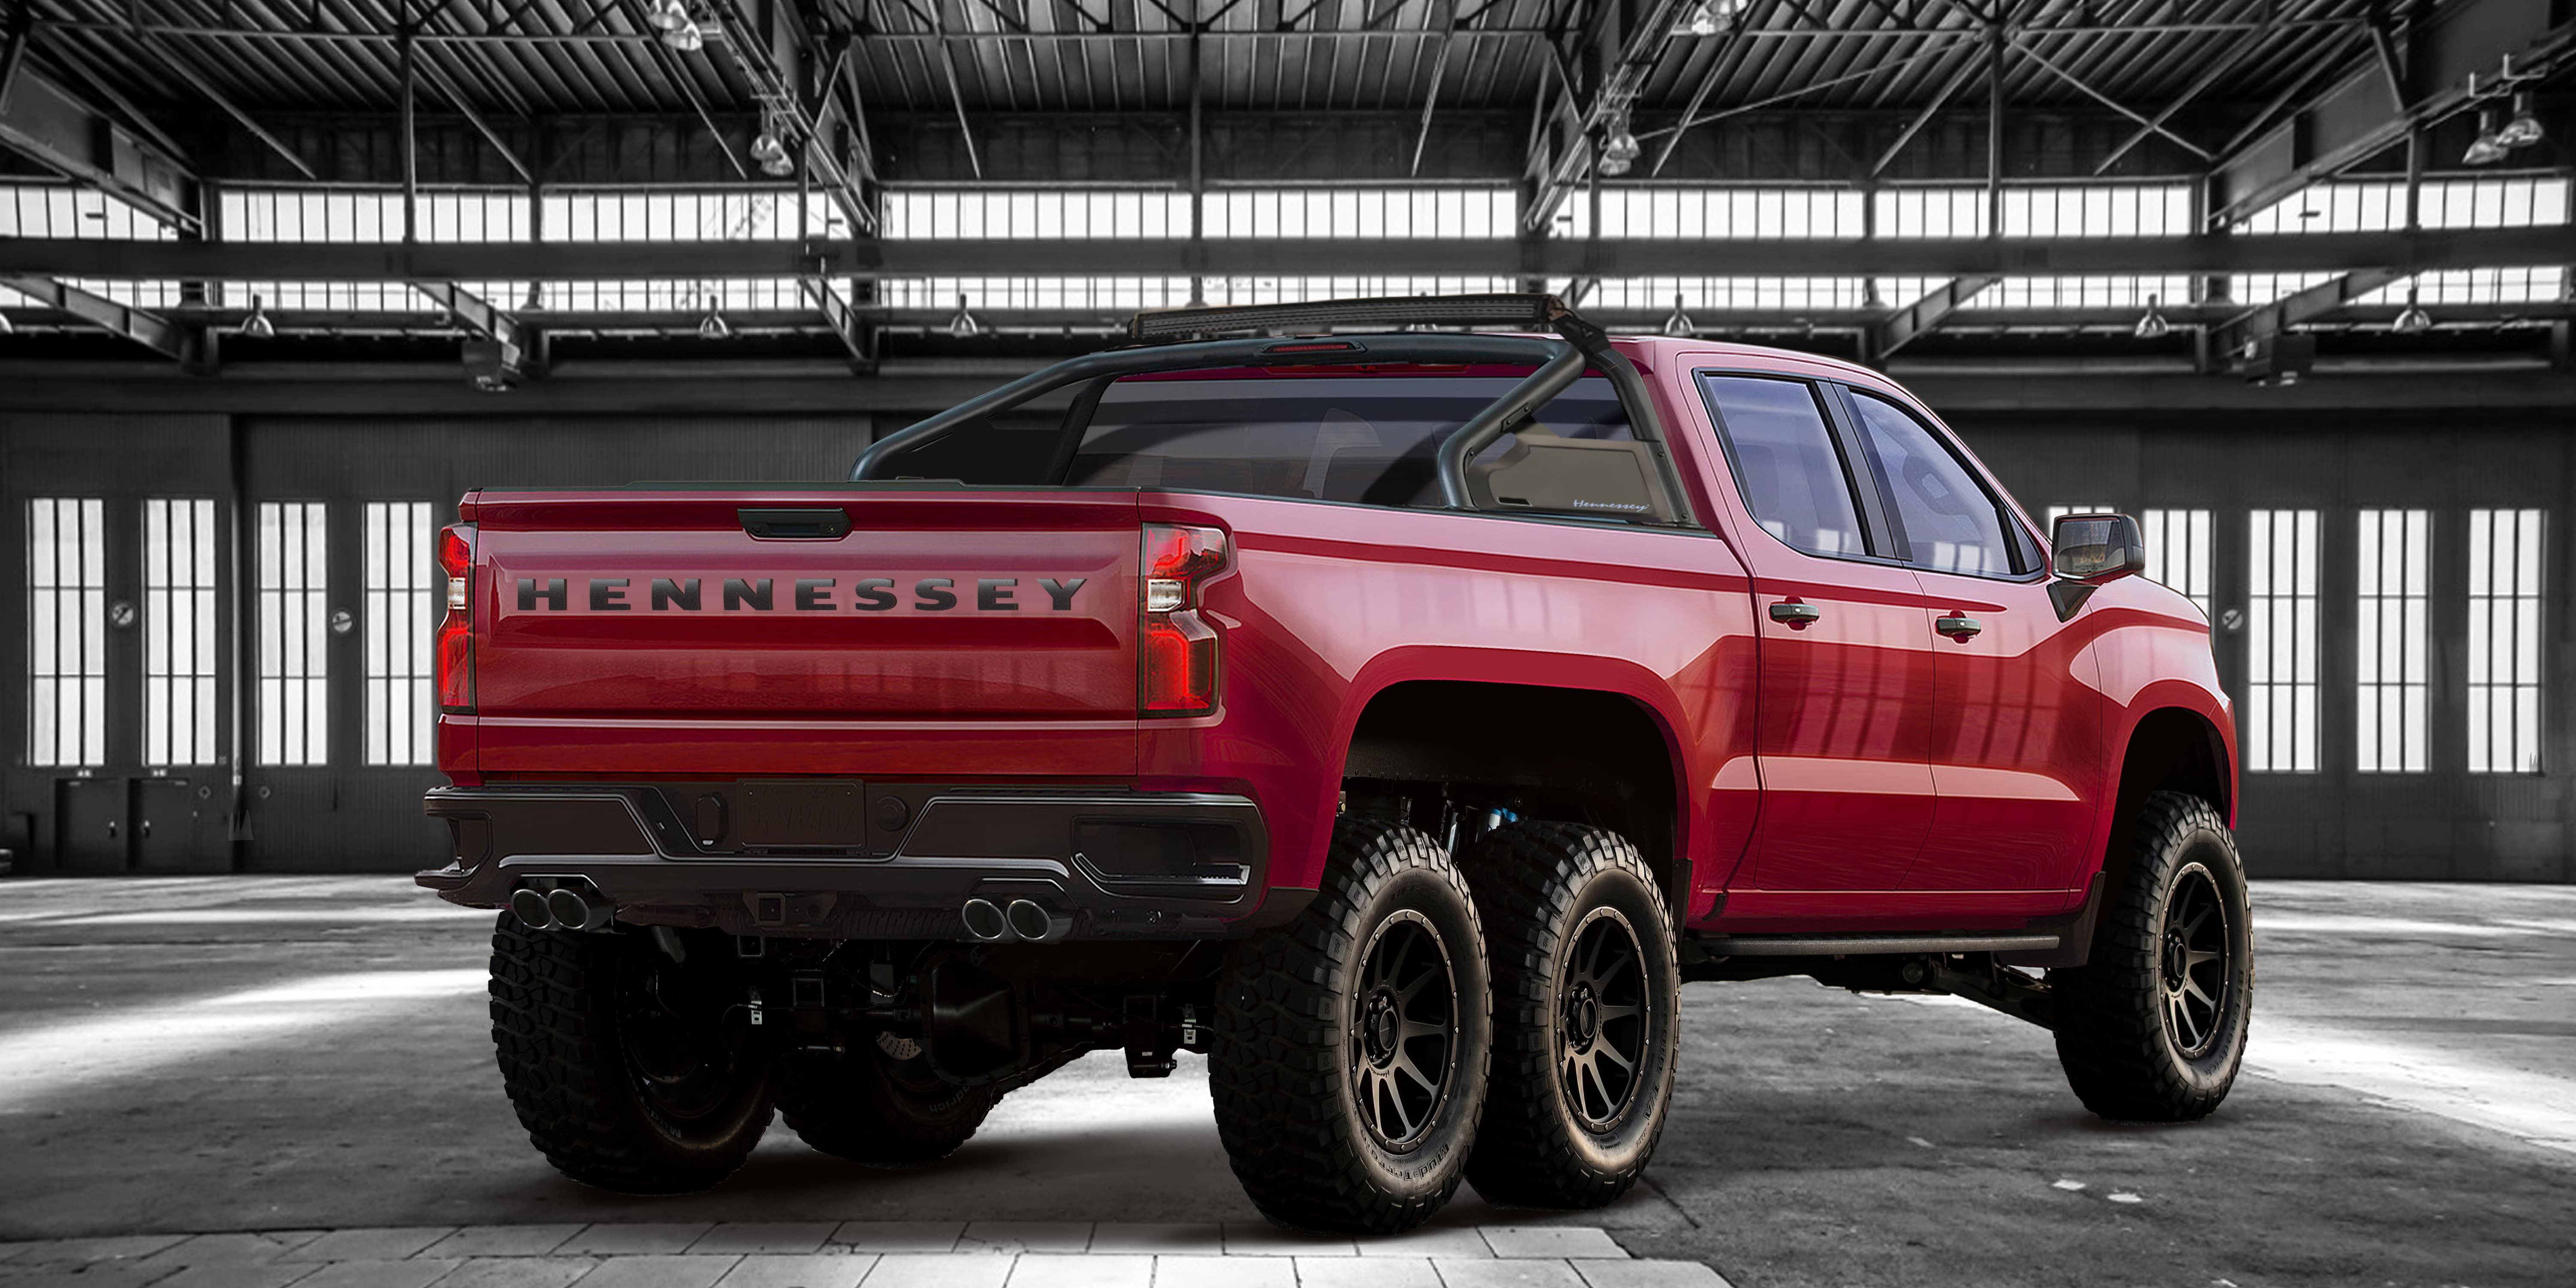 The Hennessey Goliath 6 6 The Beast Est Of The Lots Chevrolet Silverado Pickup Trucks Hennessey